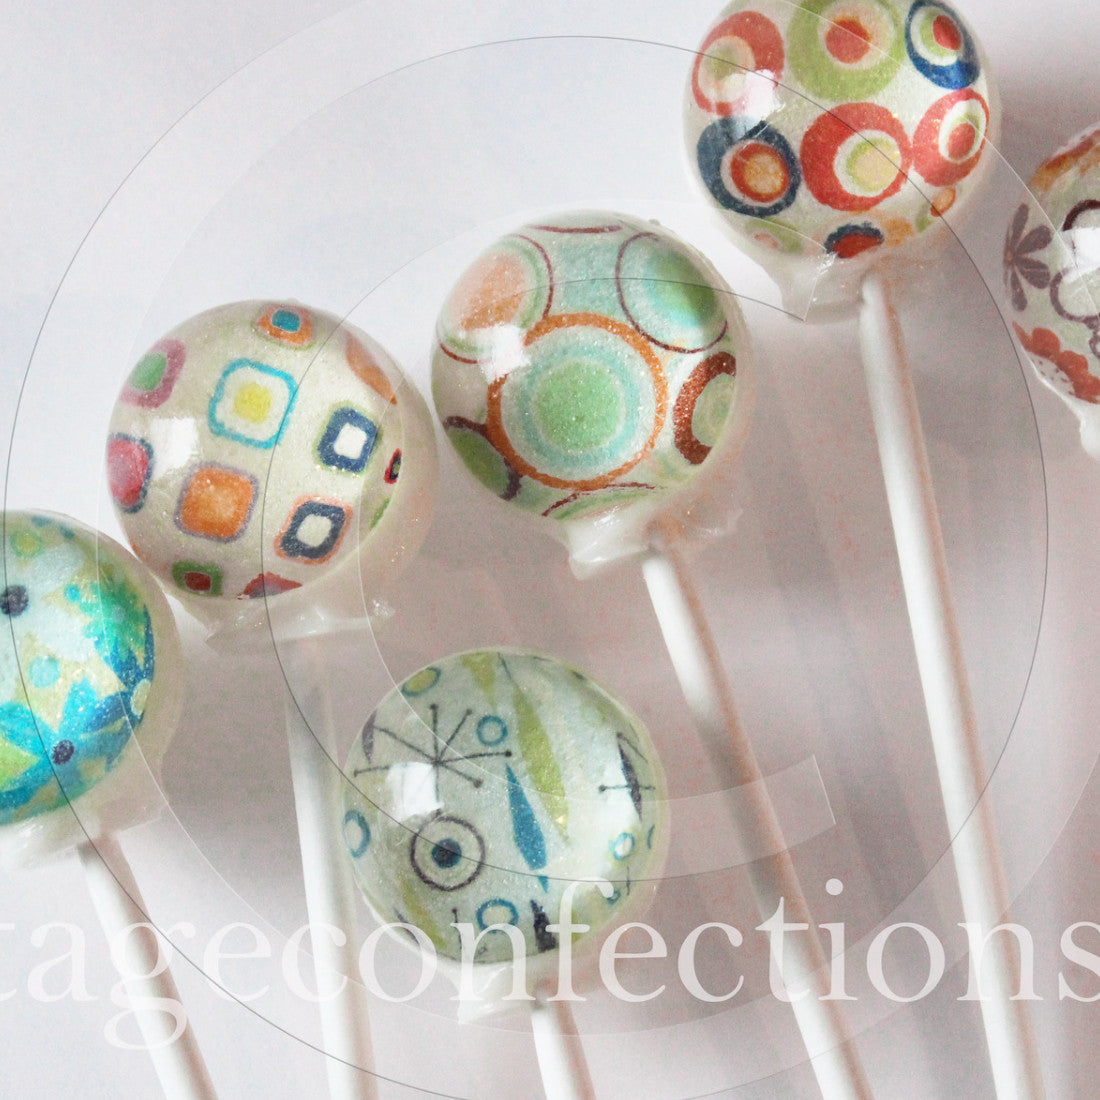 Retro hip hop flower power edible image lollipops by I Want Candy!